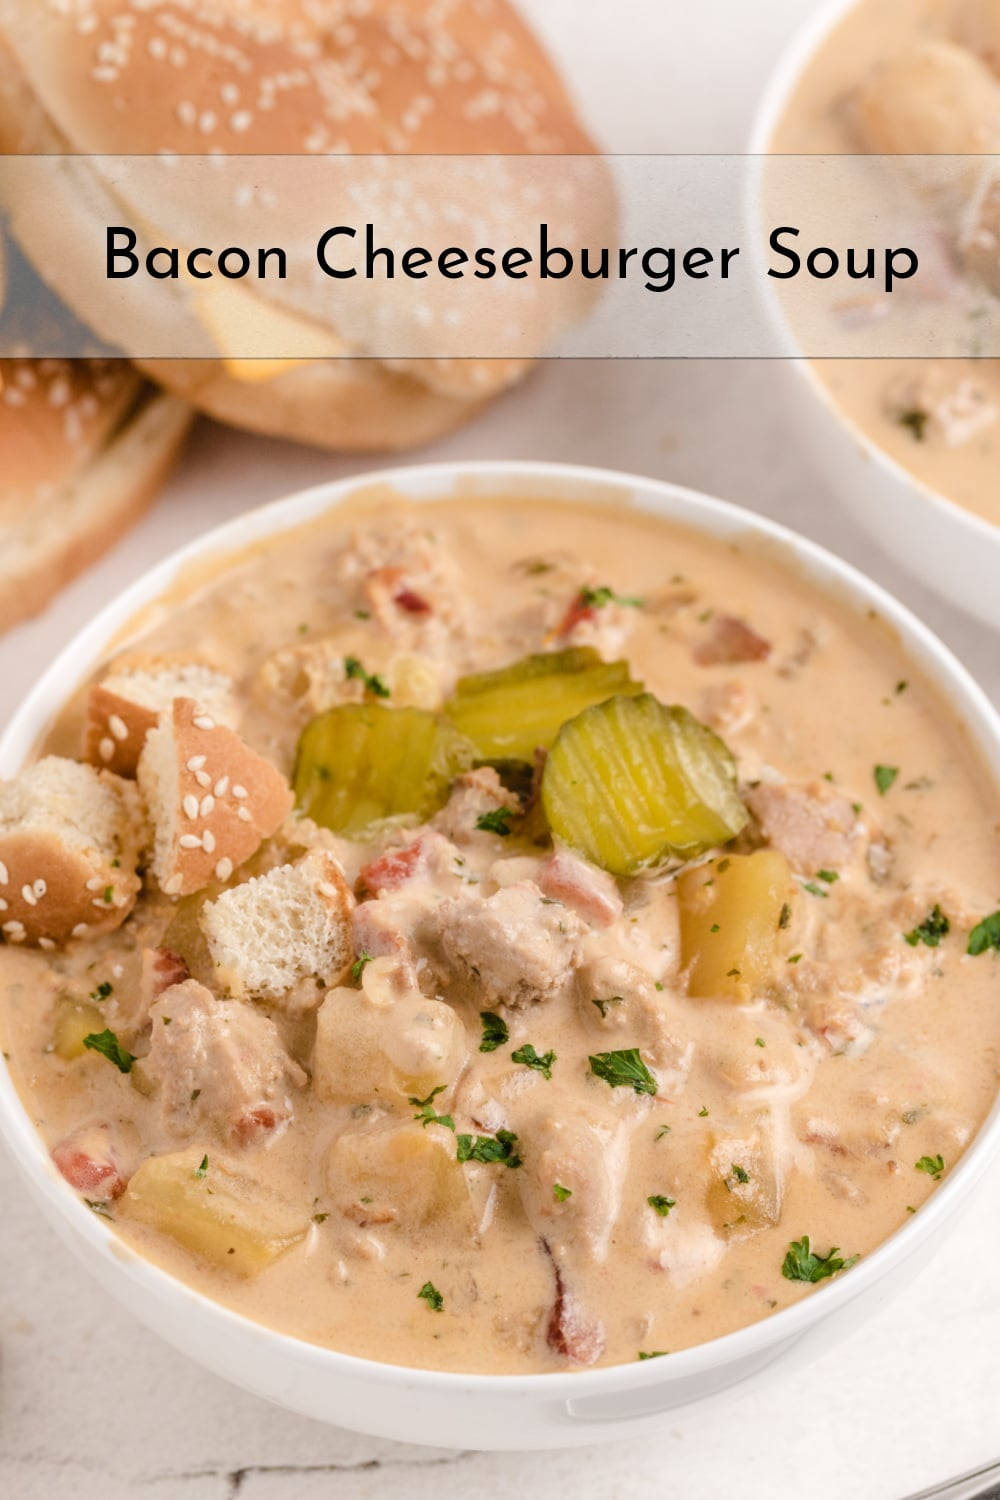 Bacon Cheeseburger Soup ~ creamy, cheesy and packed with bacon, potatoes and all the fixings of a regular cheeseburger. Comfort food at its finest. via @cmpollak1